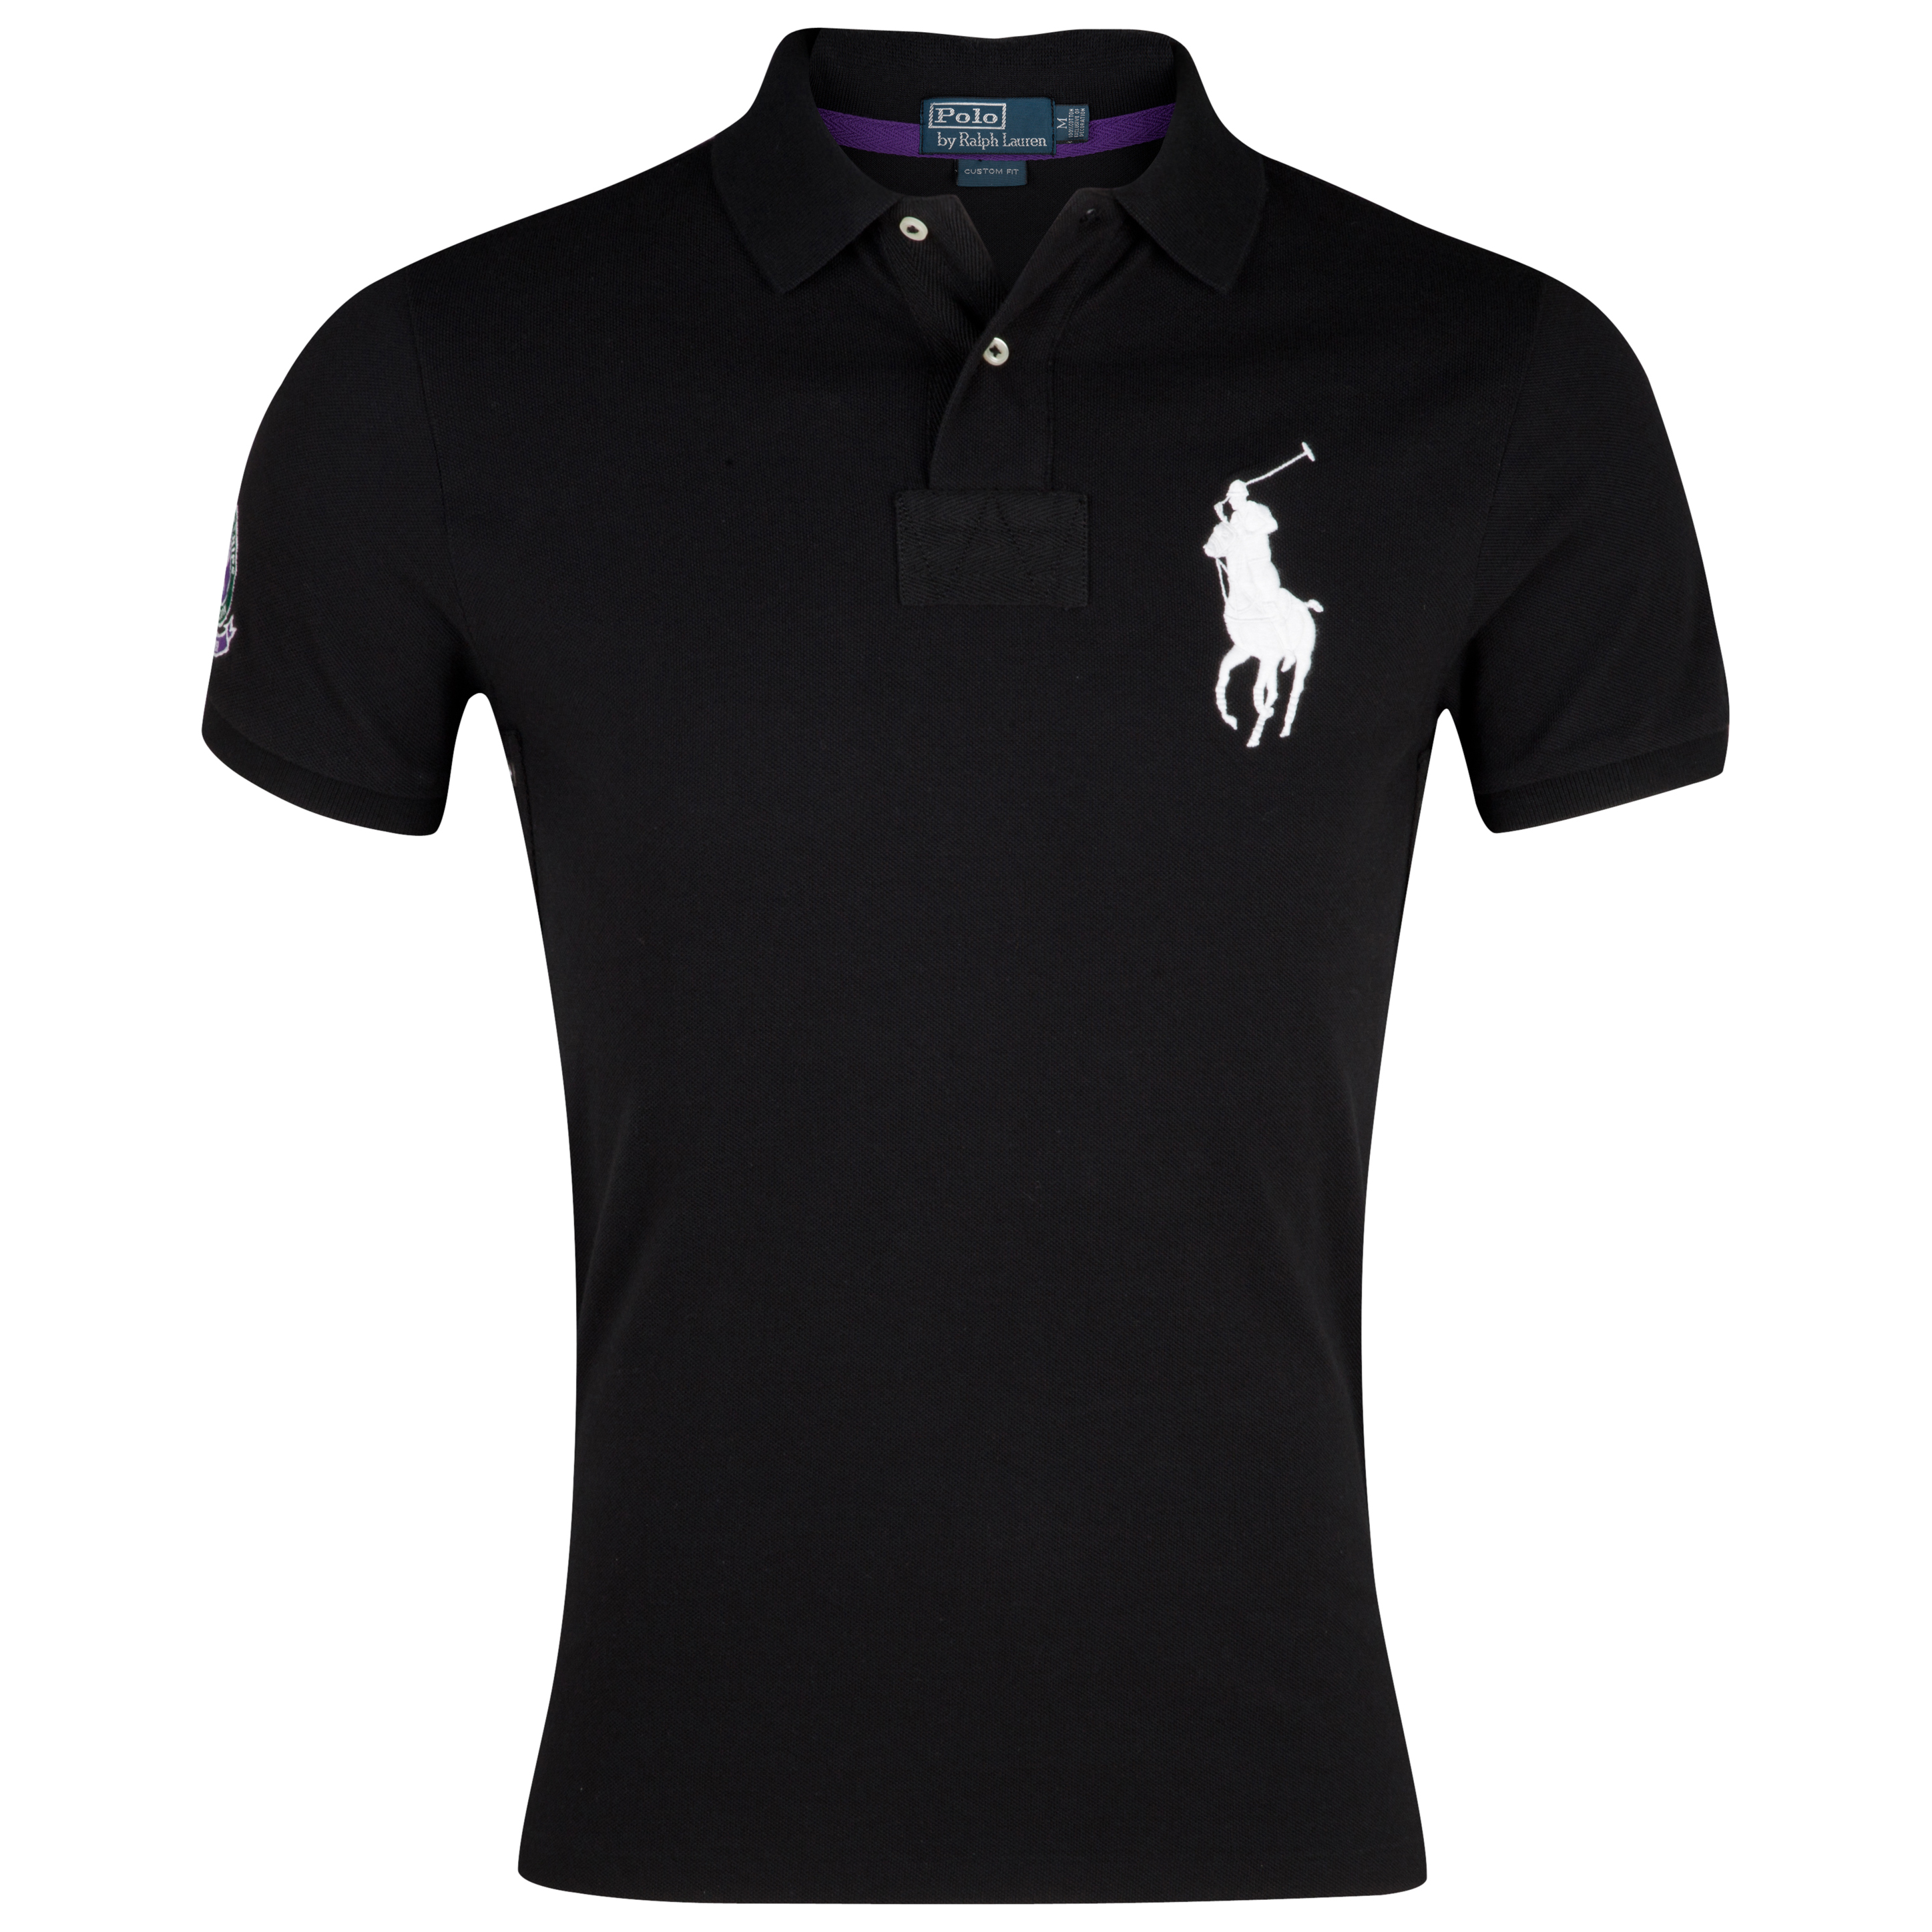 Polo Ralph Lauren Polo Short Sleeve Polo - Black